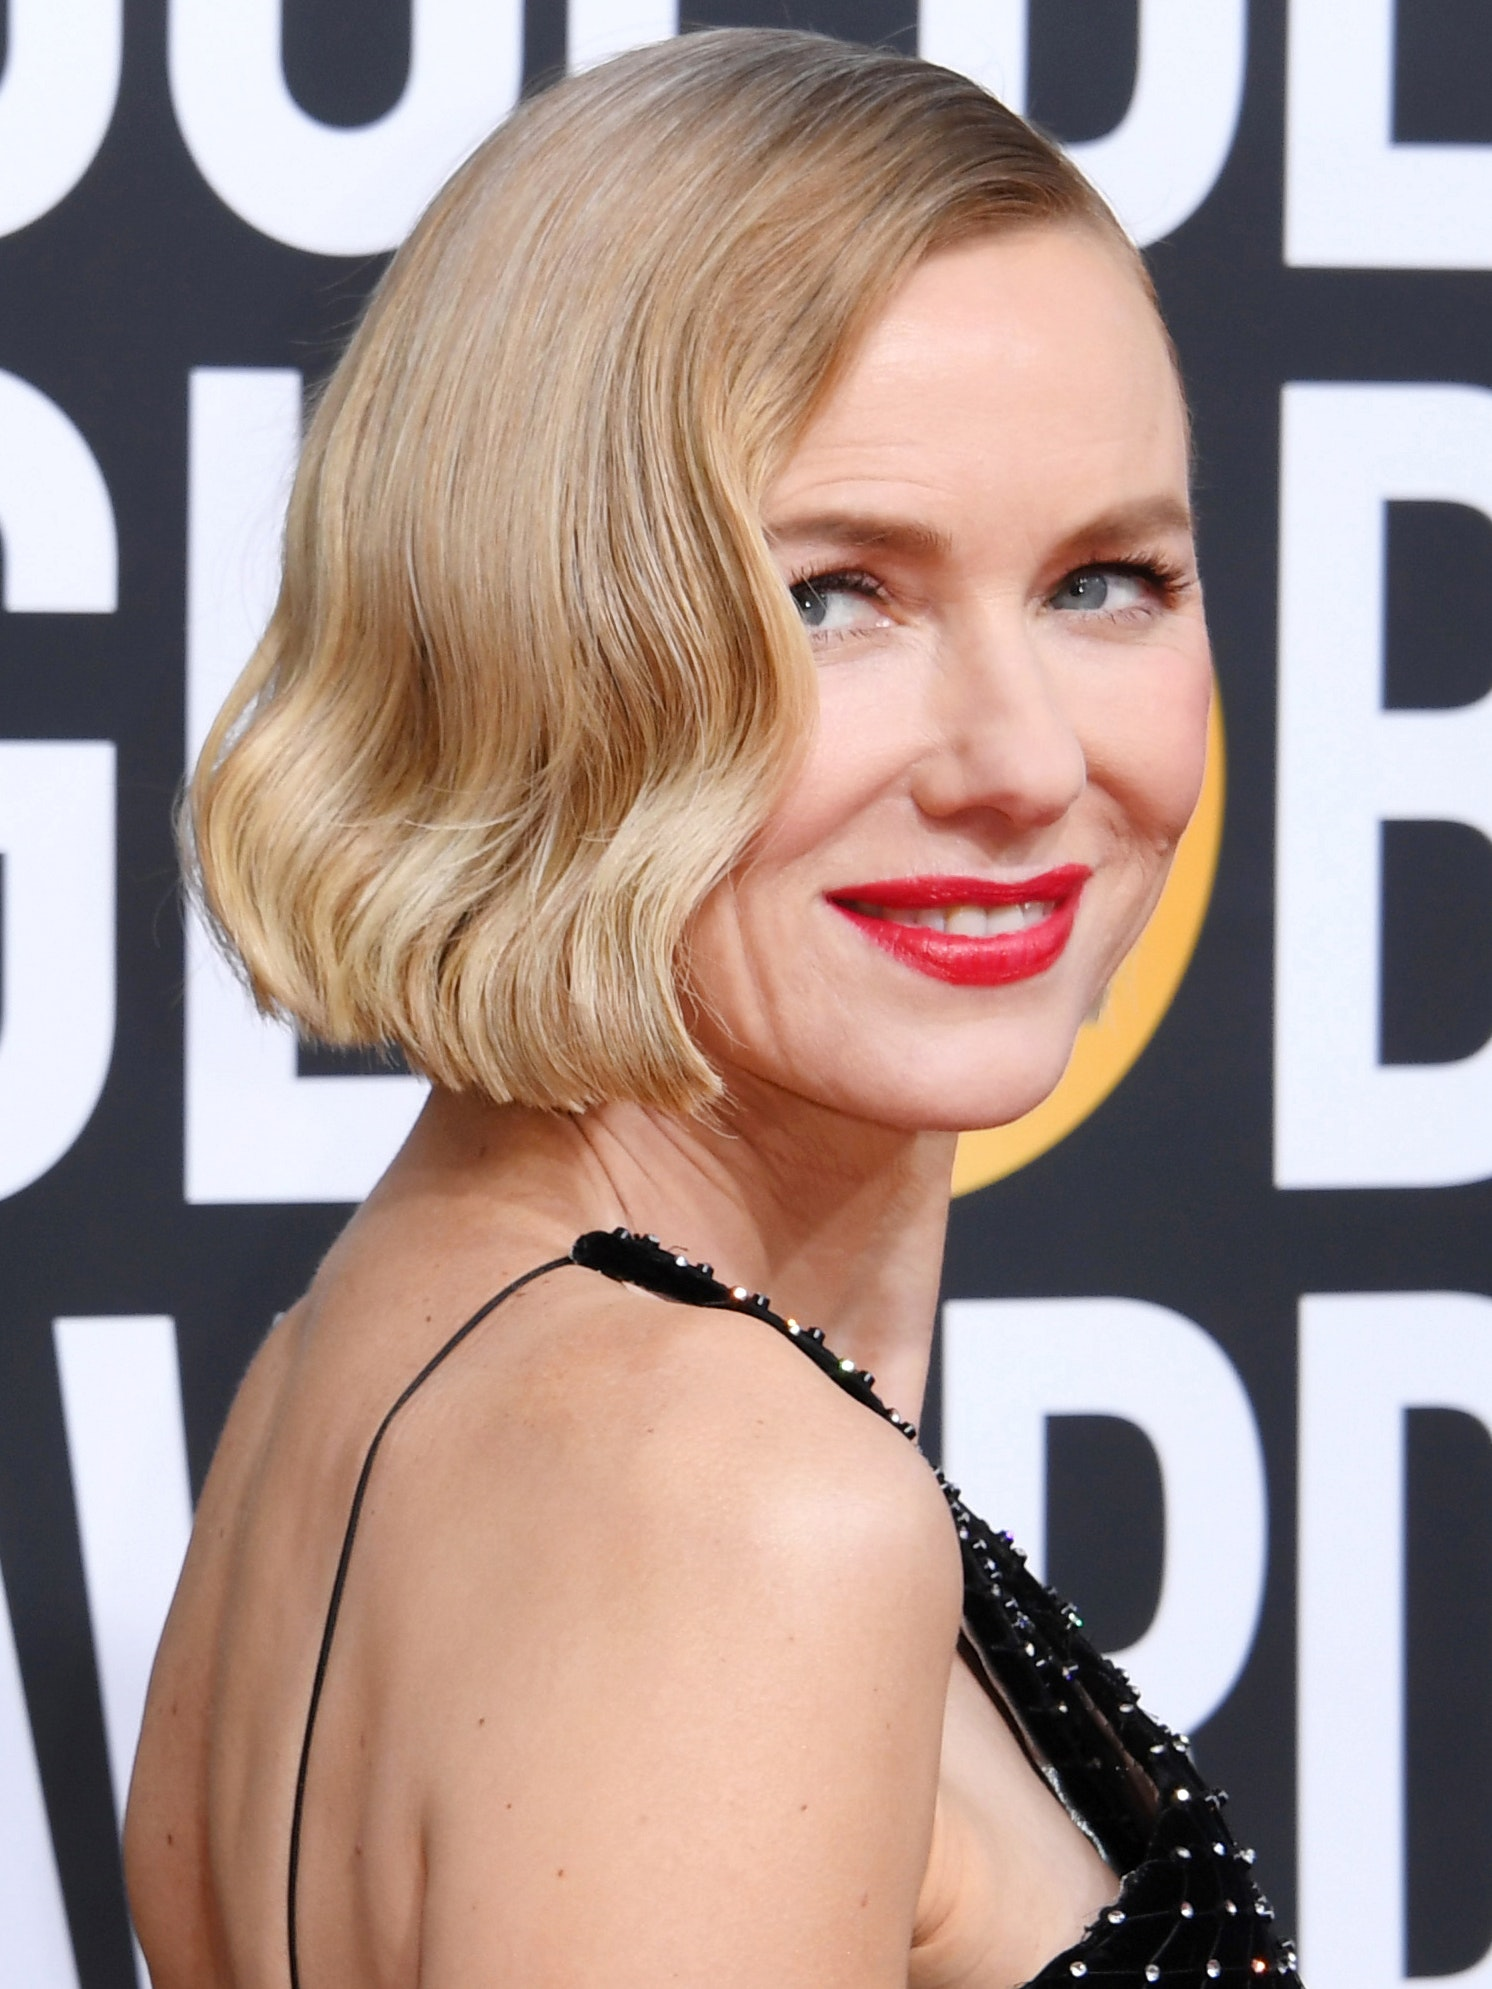 Naomi Watts Golden Globe hair and makeup